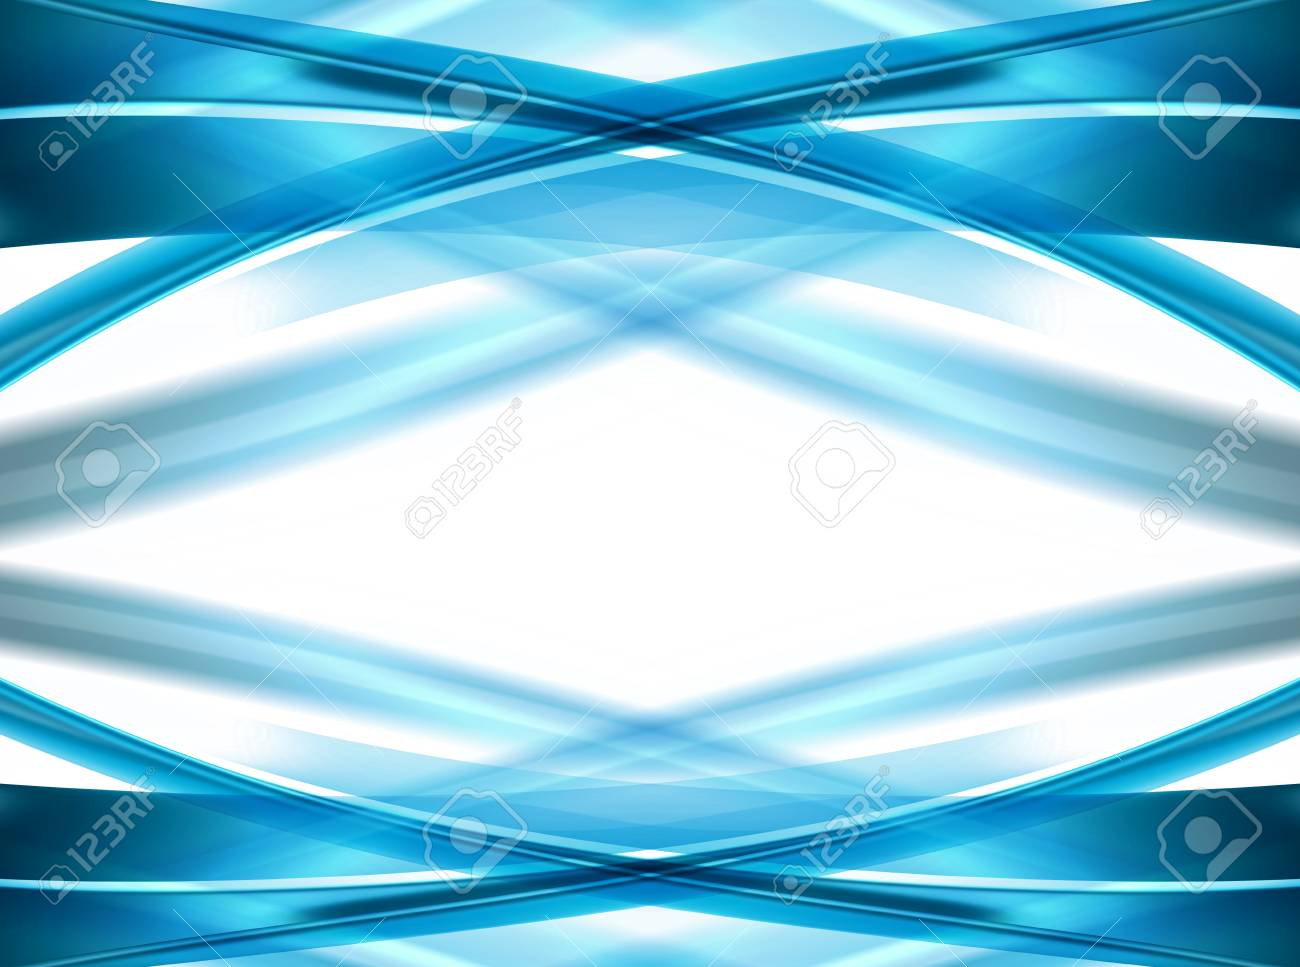 Blue waves over white background. abstract illustration Stock Illustration - 9694222